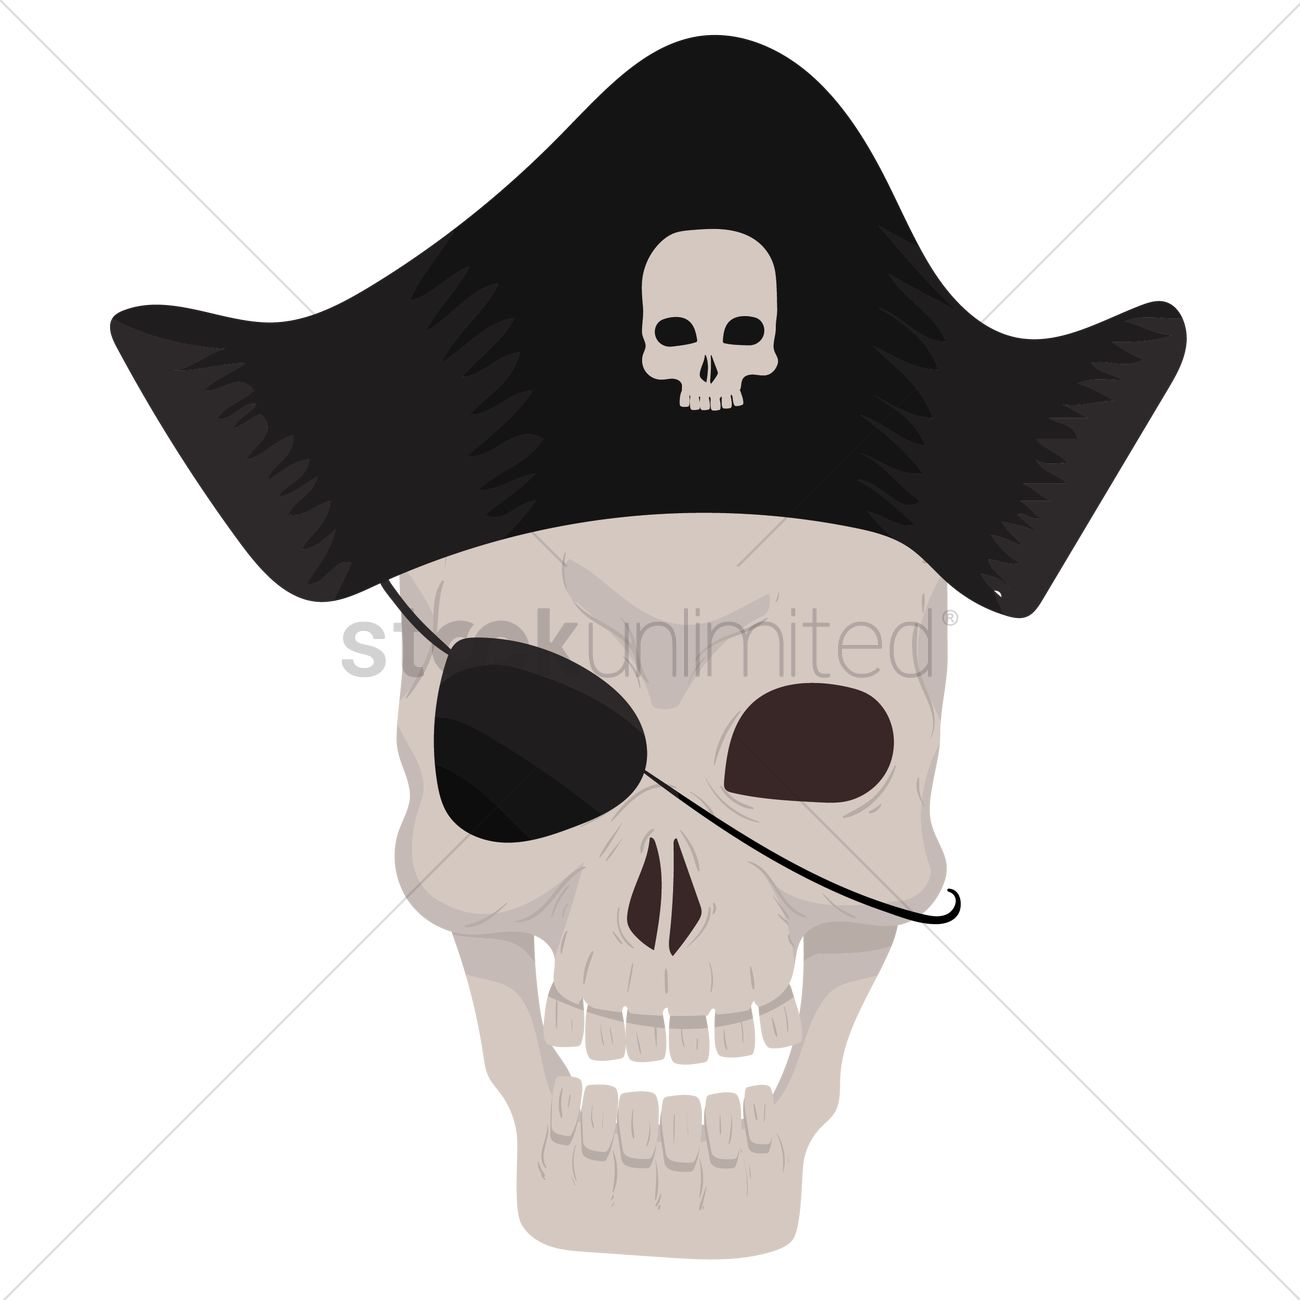 1300x1300 Free Pirate Skull Wearing Pirate Hat Vector Image